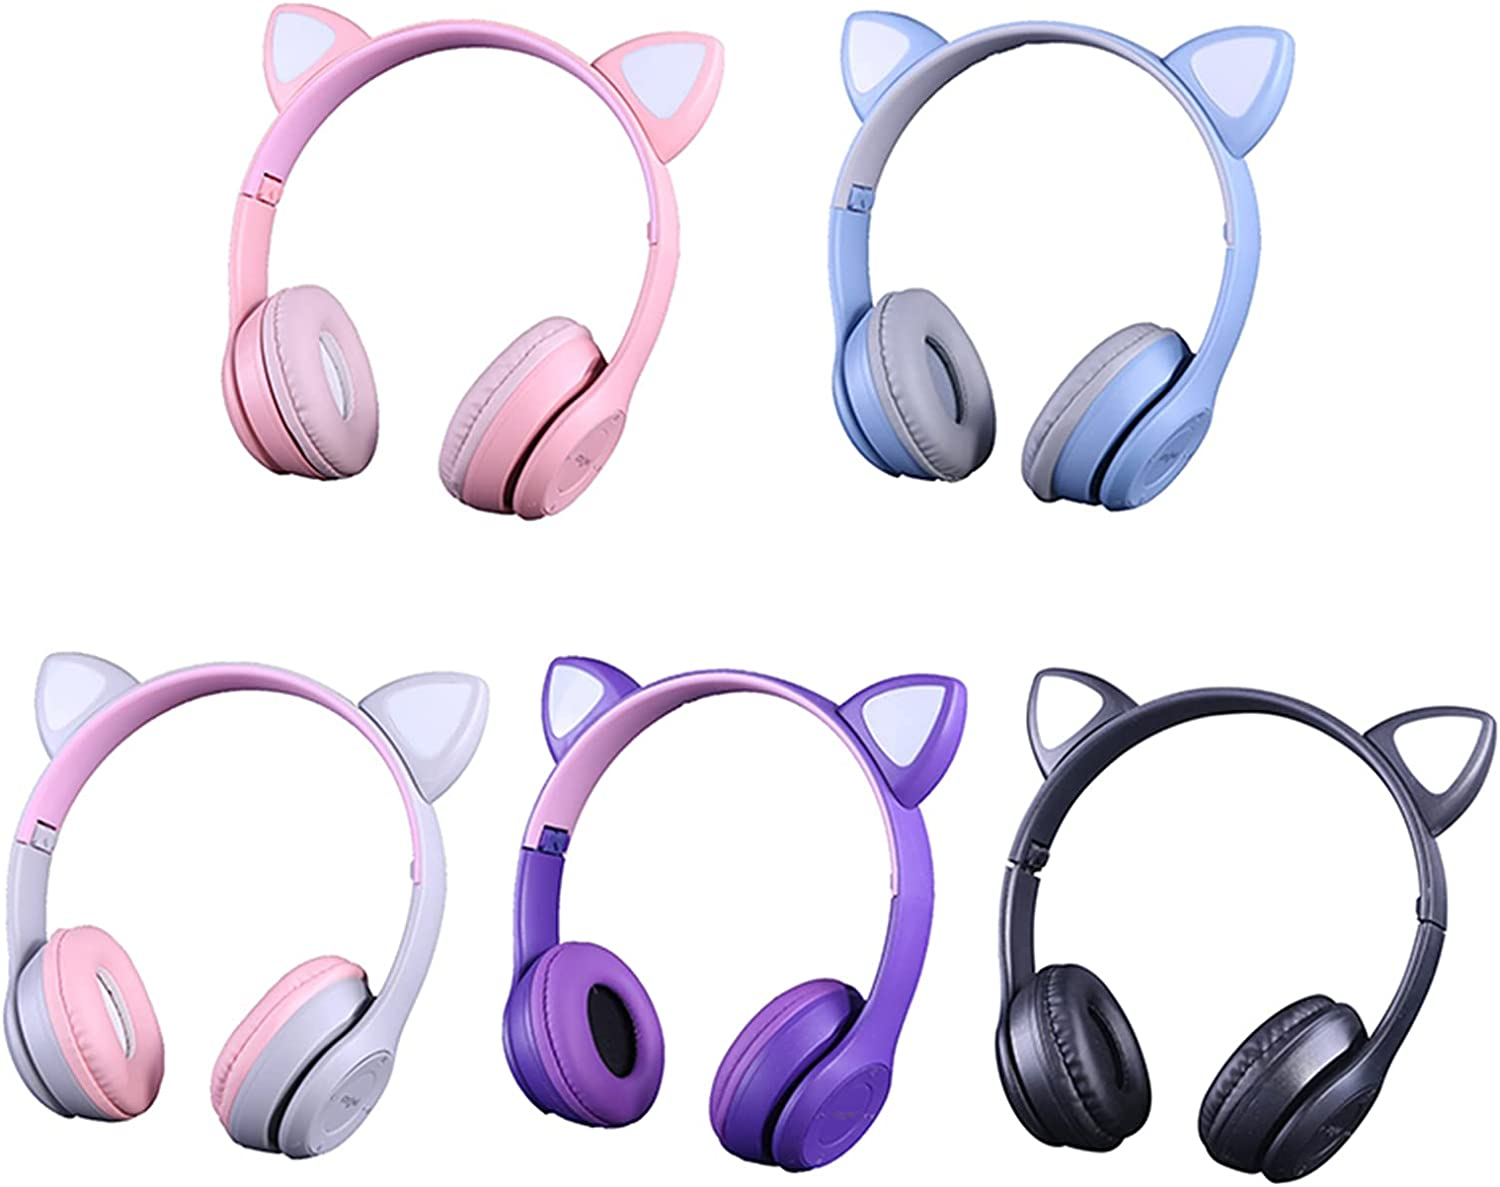 DYHF P47M Wireless Bluetooth Cat Ear Headphones, Over Ear Cat LED Light Glowing Foldable Music Headset with AUX 3.5mm and Microphone, Gifts Fit Adults/Kids for PC, TV Game, Mobile, Laptop